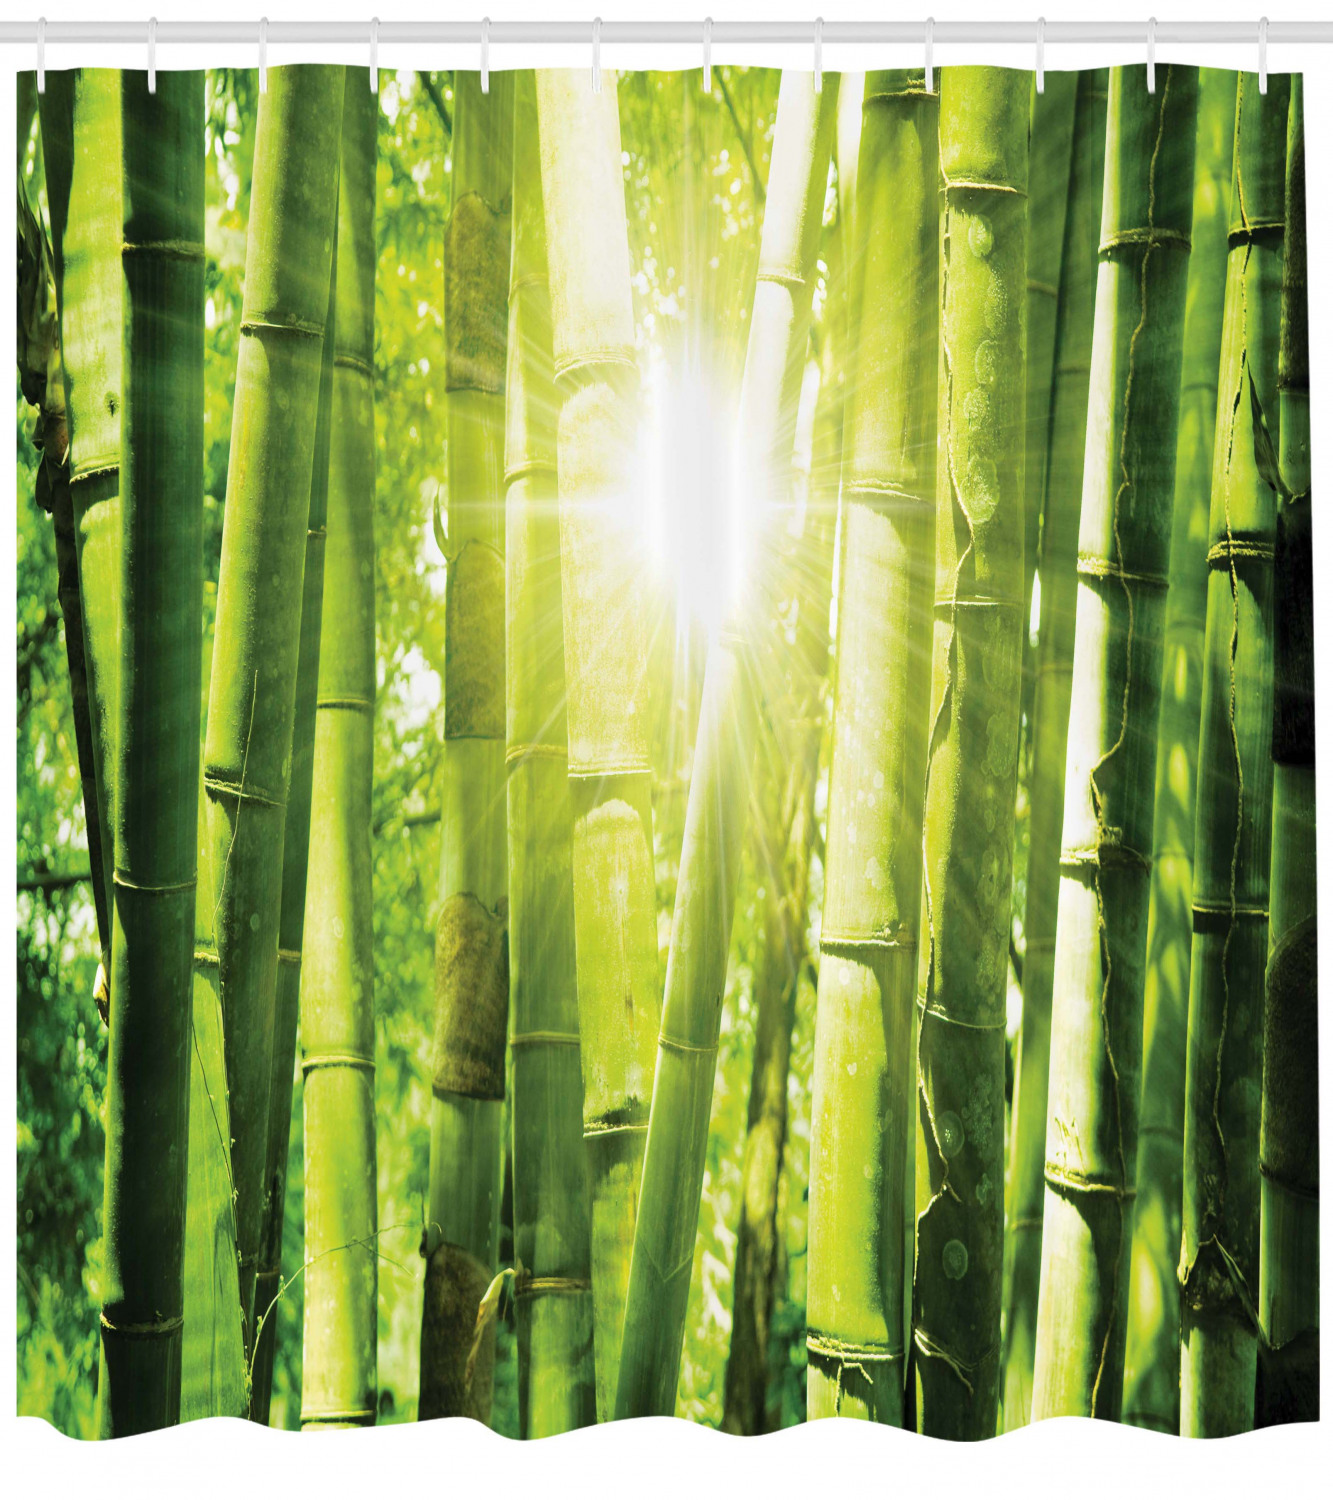 Asian Shower Curtain Asian Bamboo Forest With Morning Sunlight Sun Beams Through Trees Jungle Scene Fabric Bathroom Set With Hooks Lime Green